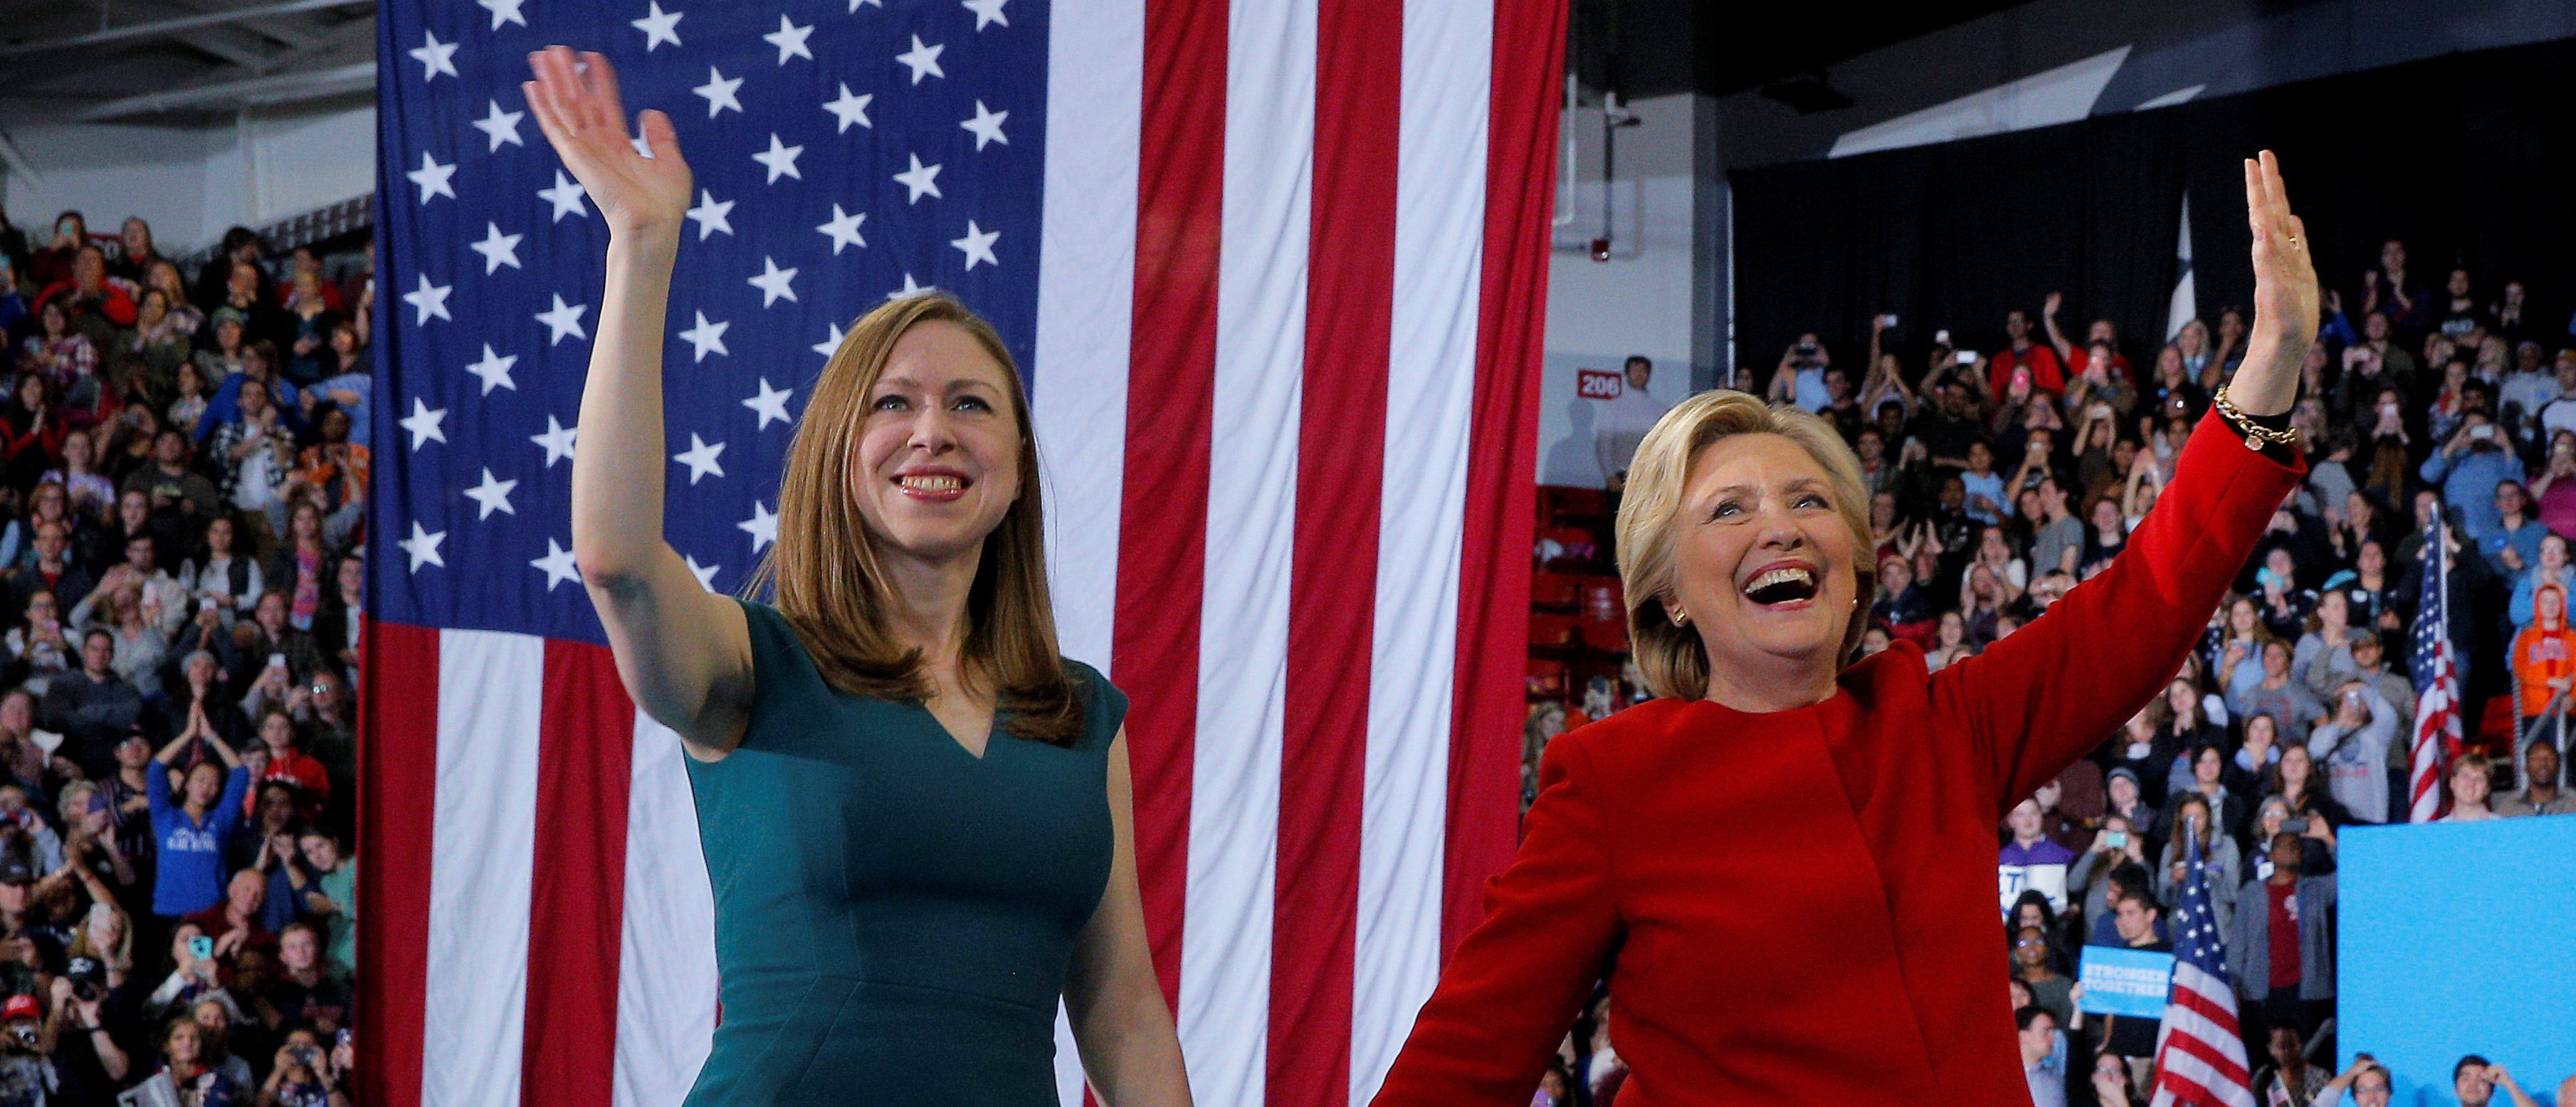 U.S. Democratic presidential nominee Hillary Clinton and her daughter Chelsea wave to the crowd at a campaign rally in Raleigh, North Carolina, U.S. November 8, 2016. (Brian Snyder/Reuters)